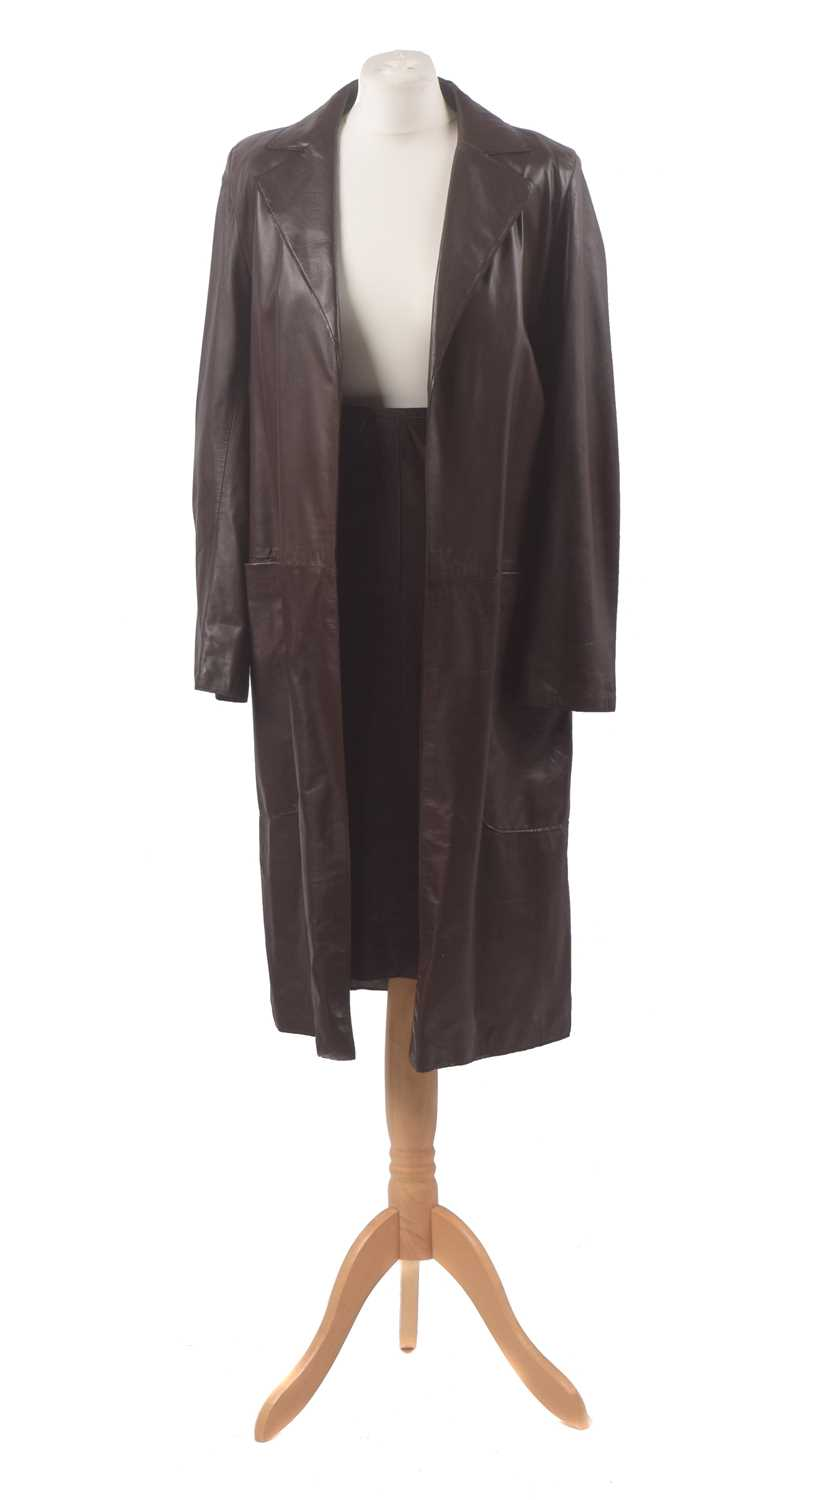 A leather coat and skirt by Mulberry, the brown mid length leather coat with accompanying leather skirt, size 8-12 (2).